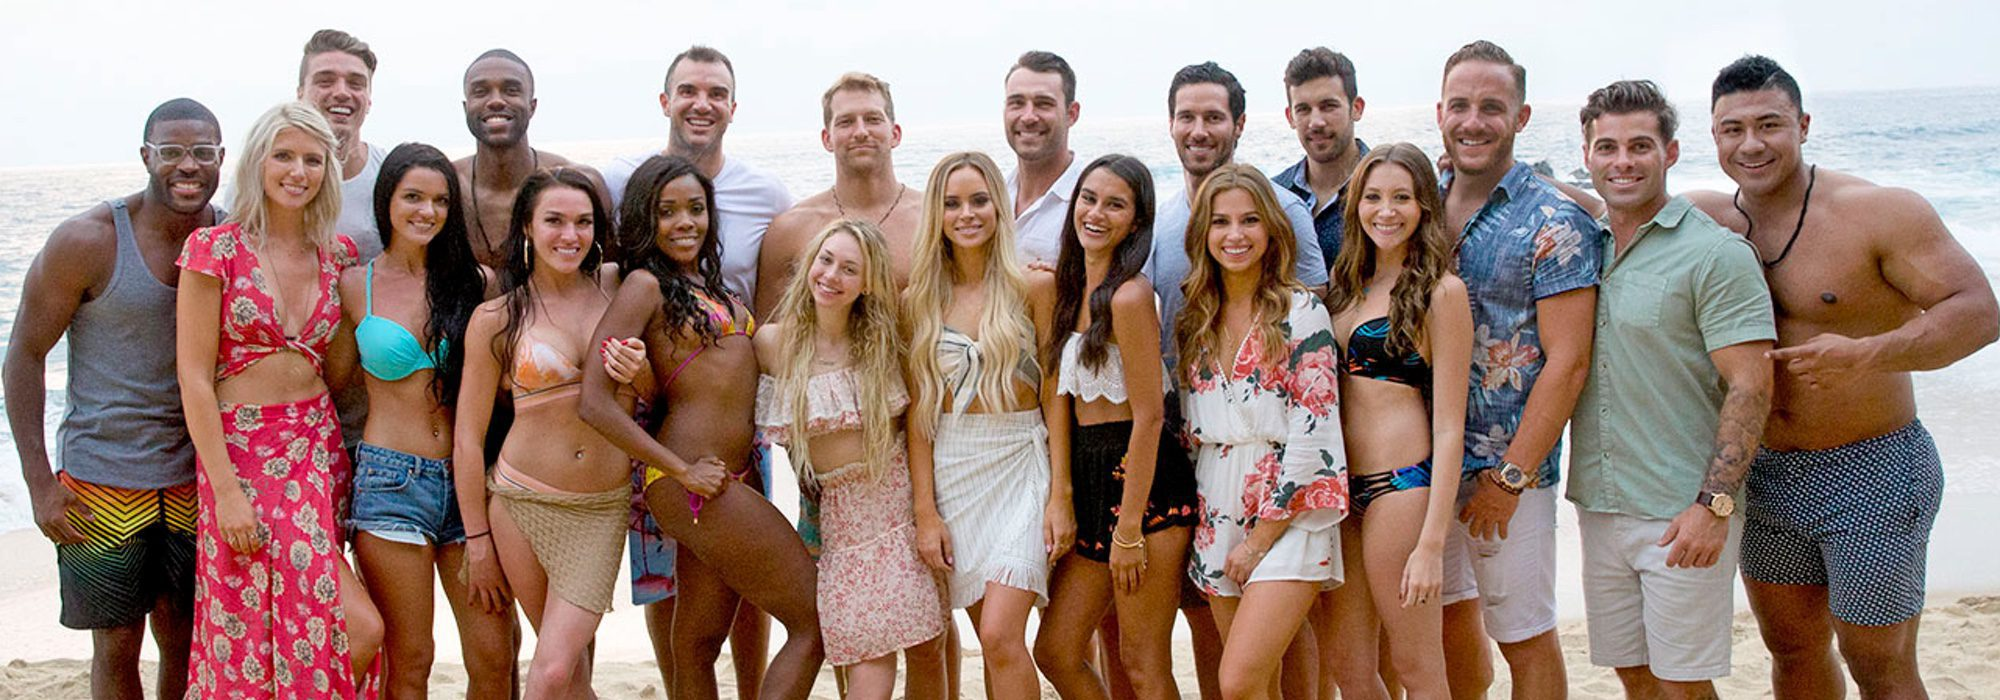 The 2018 cast of Bachelor in Paradise has officially been announced but are Blake and Jason on their way